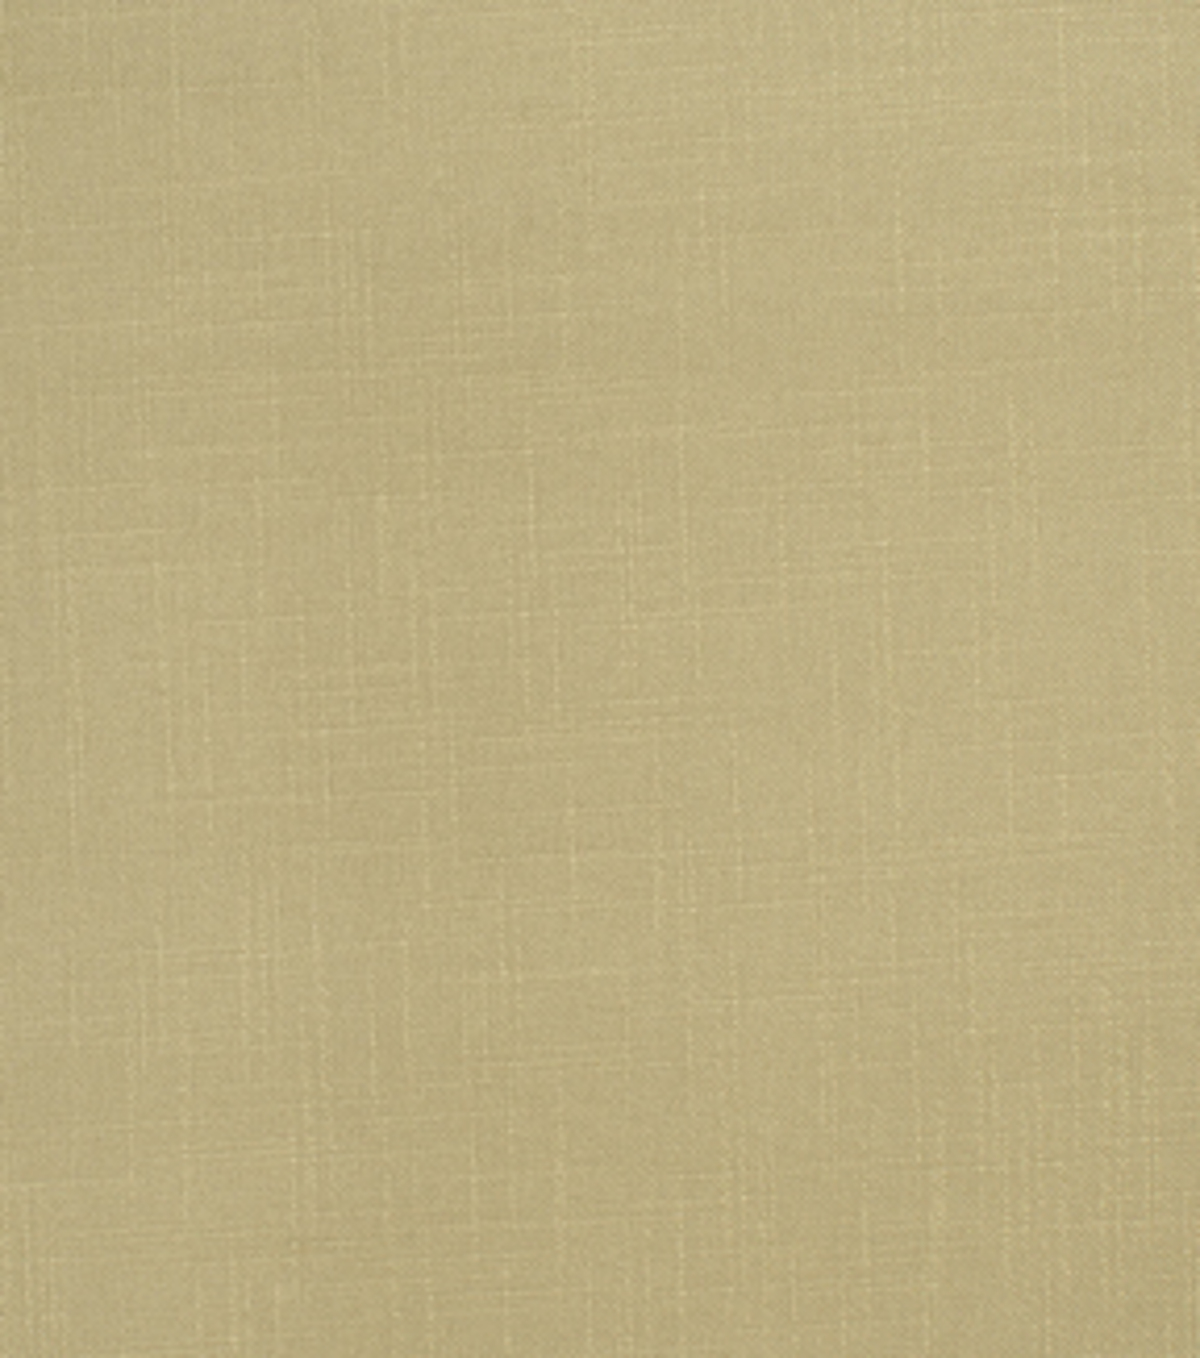 Home Decor 8\u0022x8\u0022 Fabric Swatch-Signature Series Gallantry Hemp